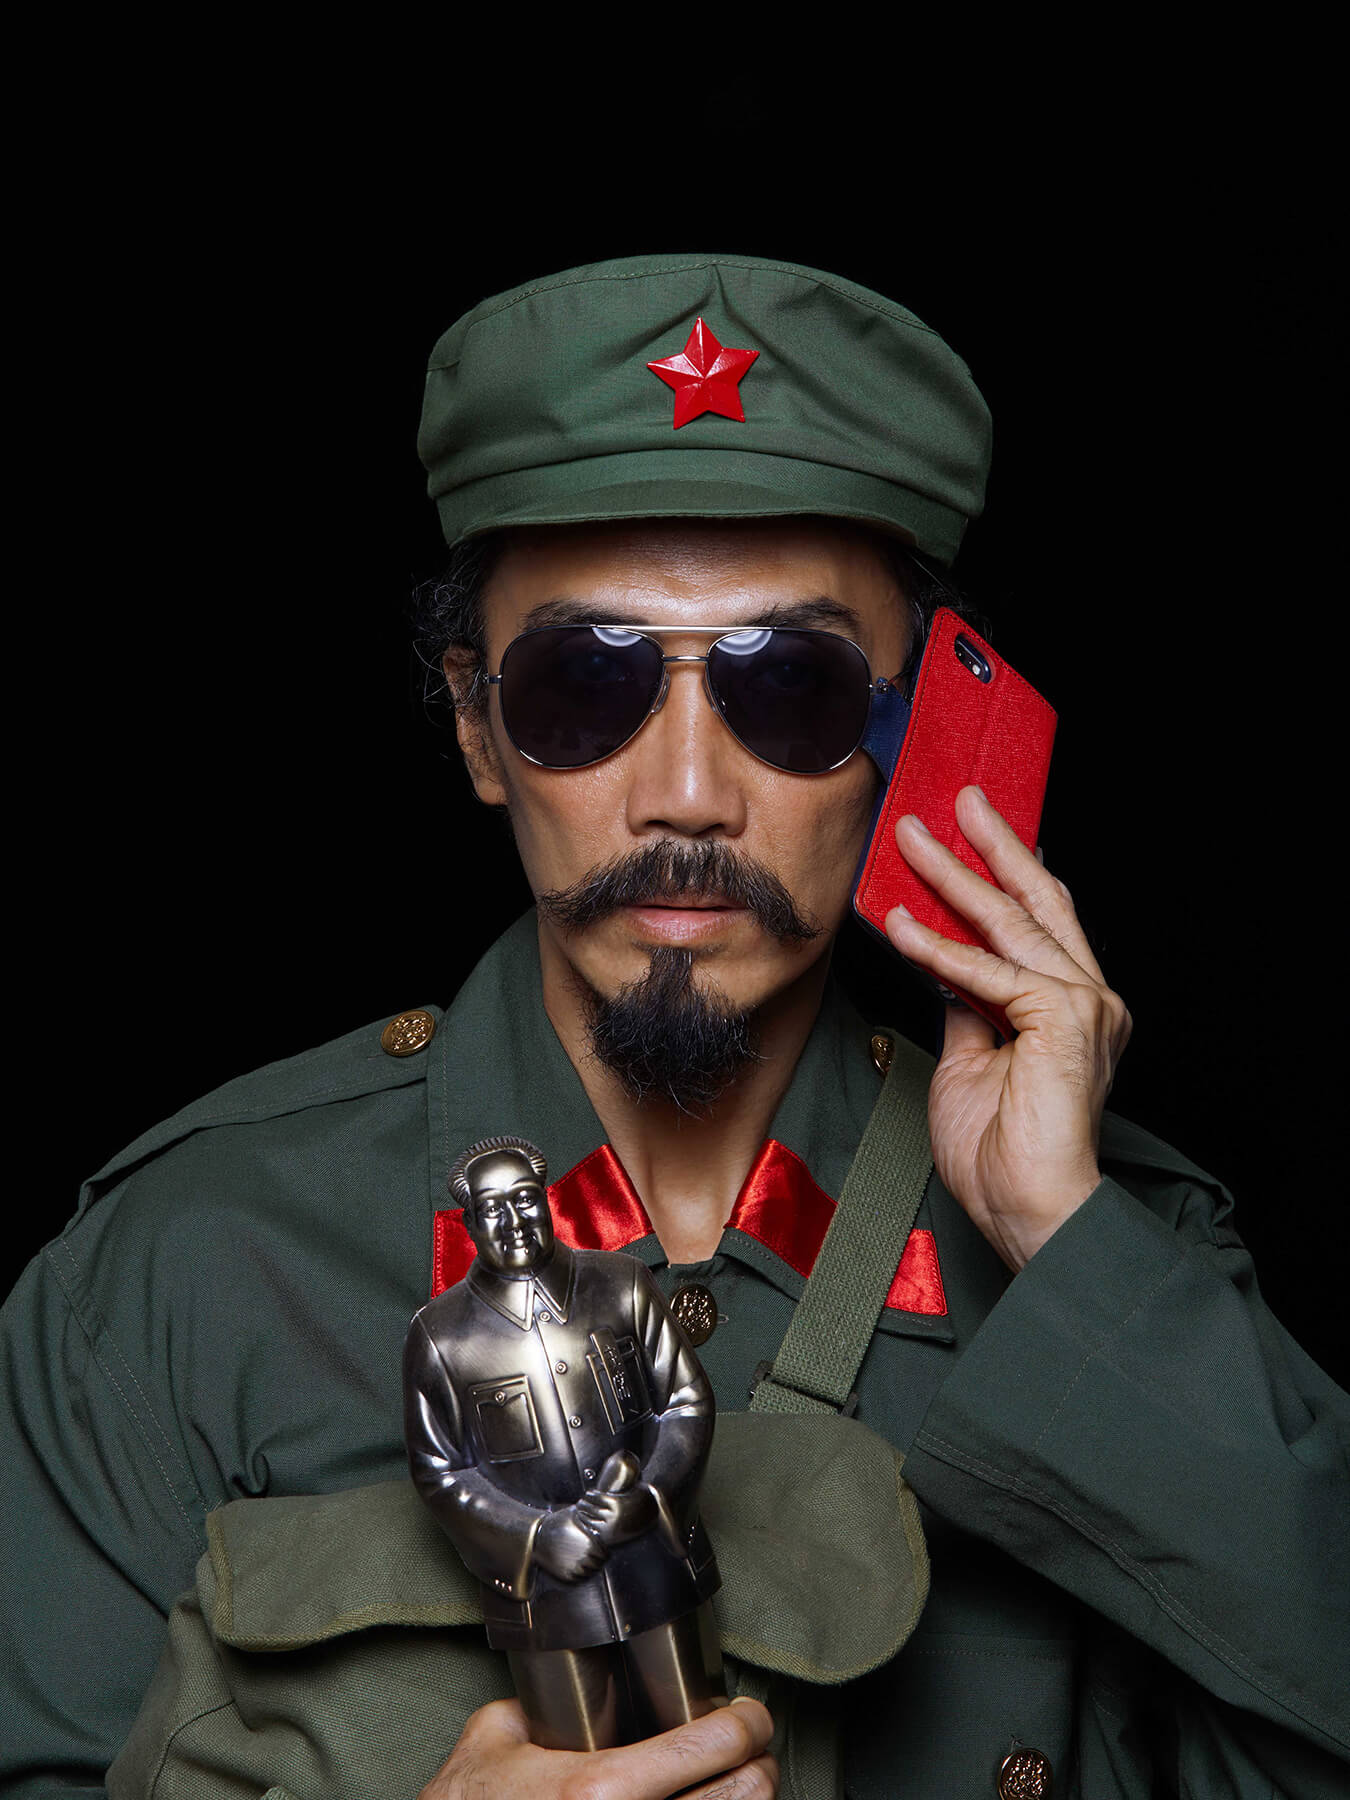 1 Oct 2017 - CHINESE GOLDEN WEEK: Derong is dressed in Chinese military uniform holding a Mao figurine and red handphone